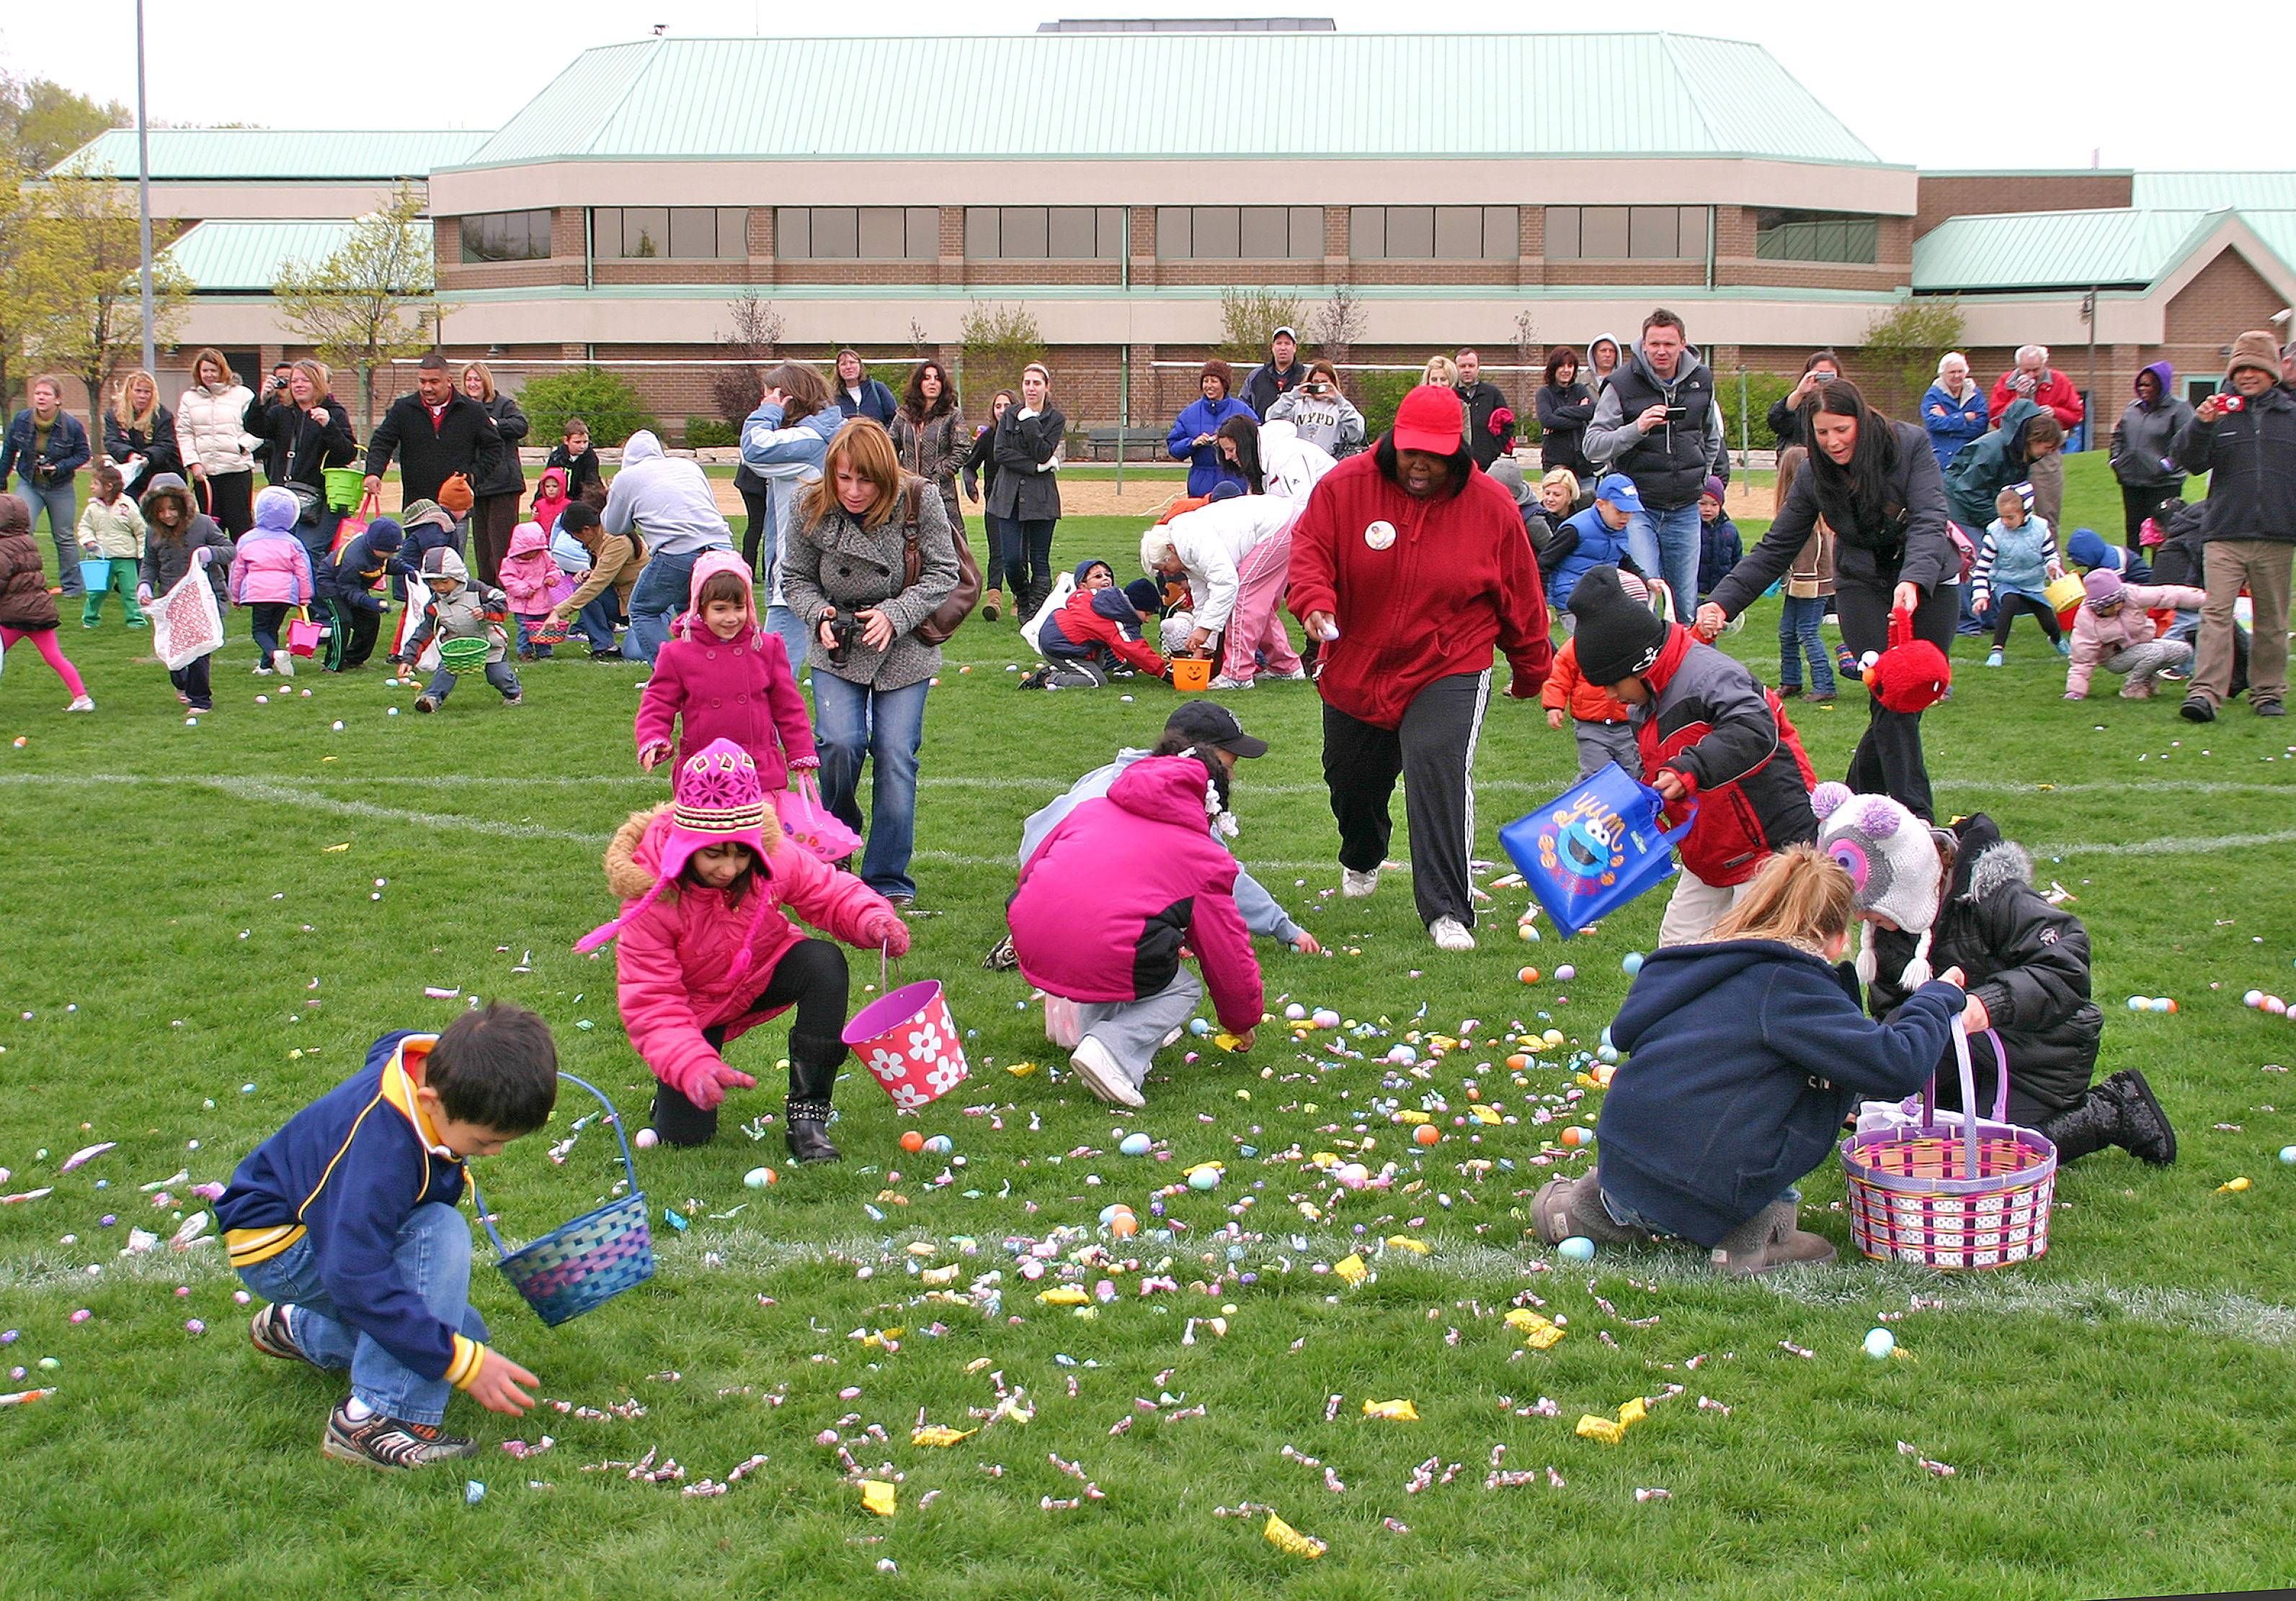 Kids of all ages hop through Prairie Lakes Park filling their baskets with goodies at the annual Free Easter Egg Hunts sponsored by the Des Plaines Park District.